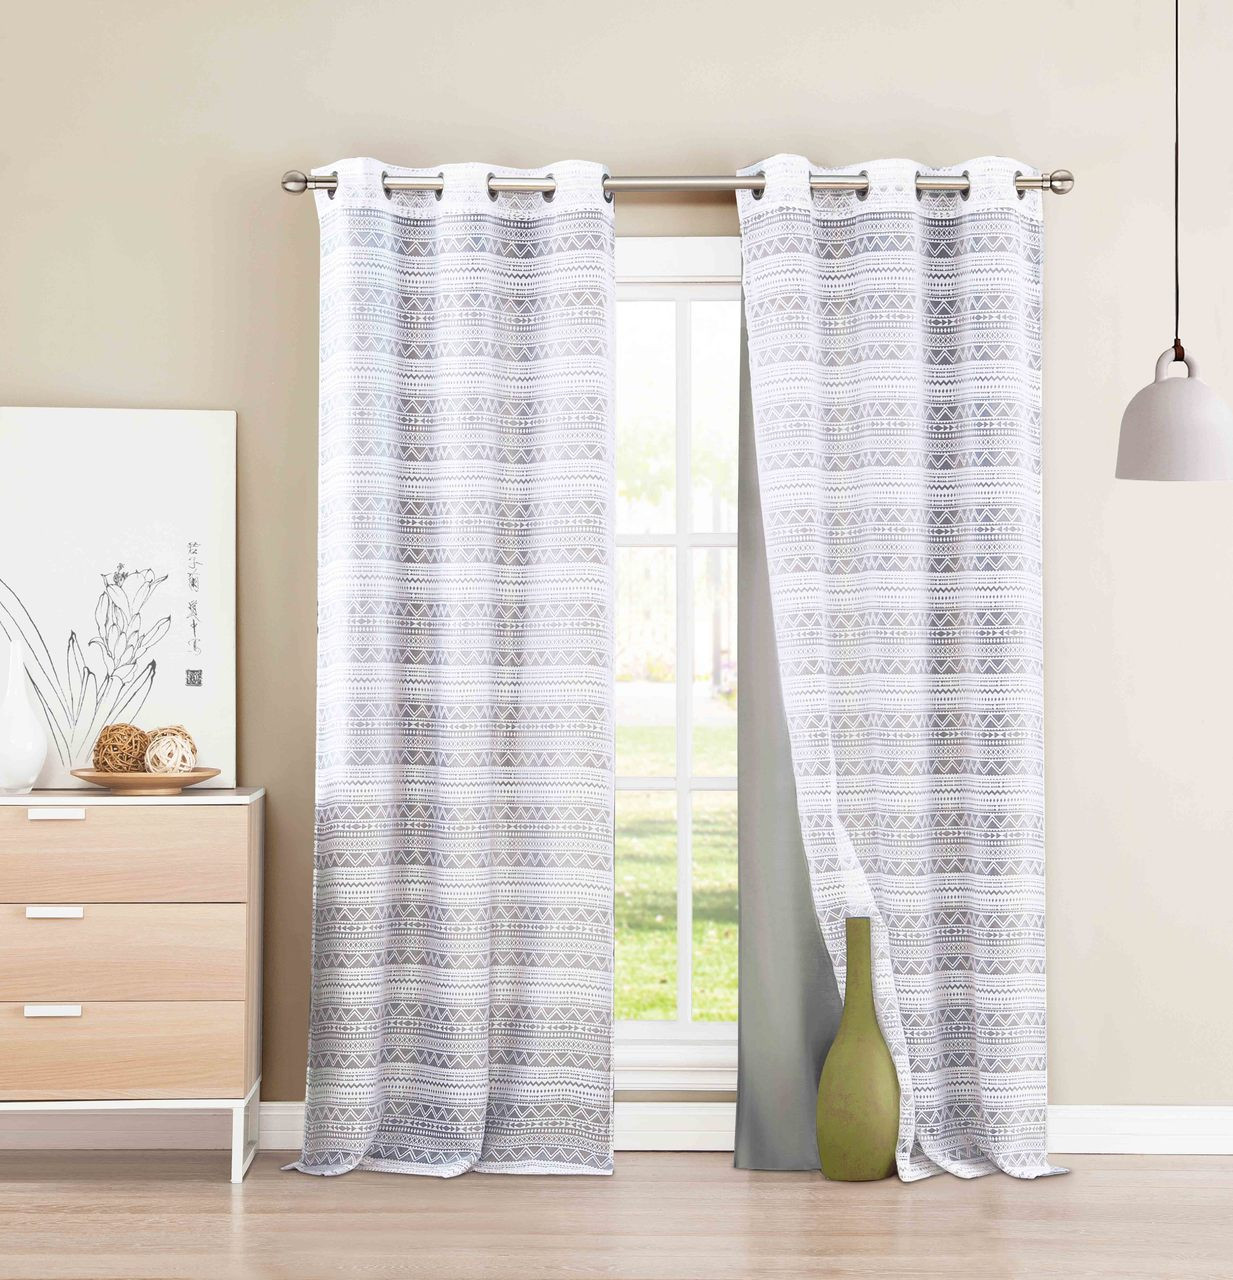 4 Pc Grommet Window Curtain Panel Set Mix And Match Layered Look 2 Gray Faux Silk Panels 2 White Burnout Sheer Panels 84 Long My Infinity Store